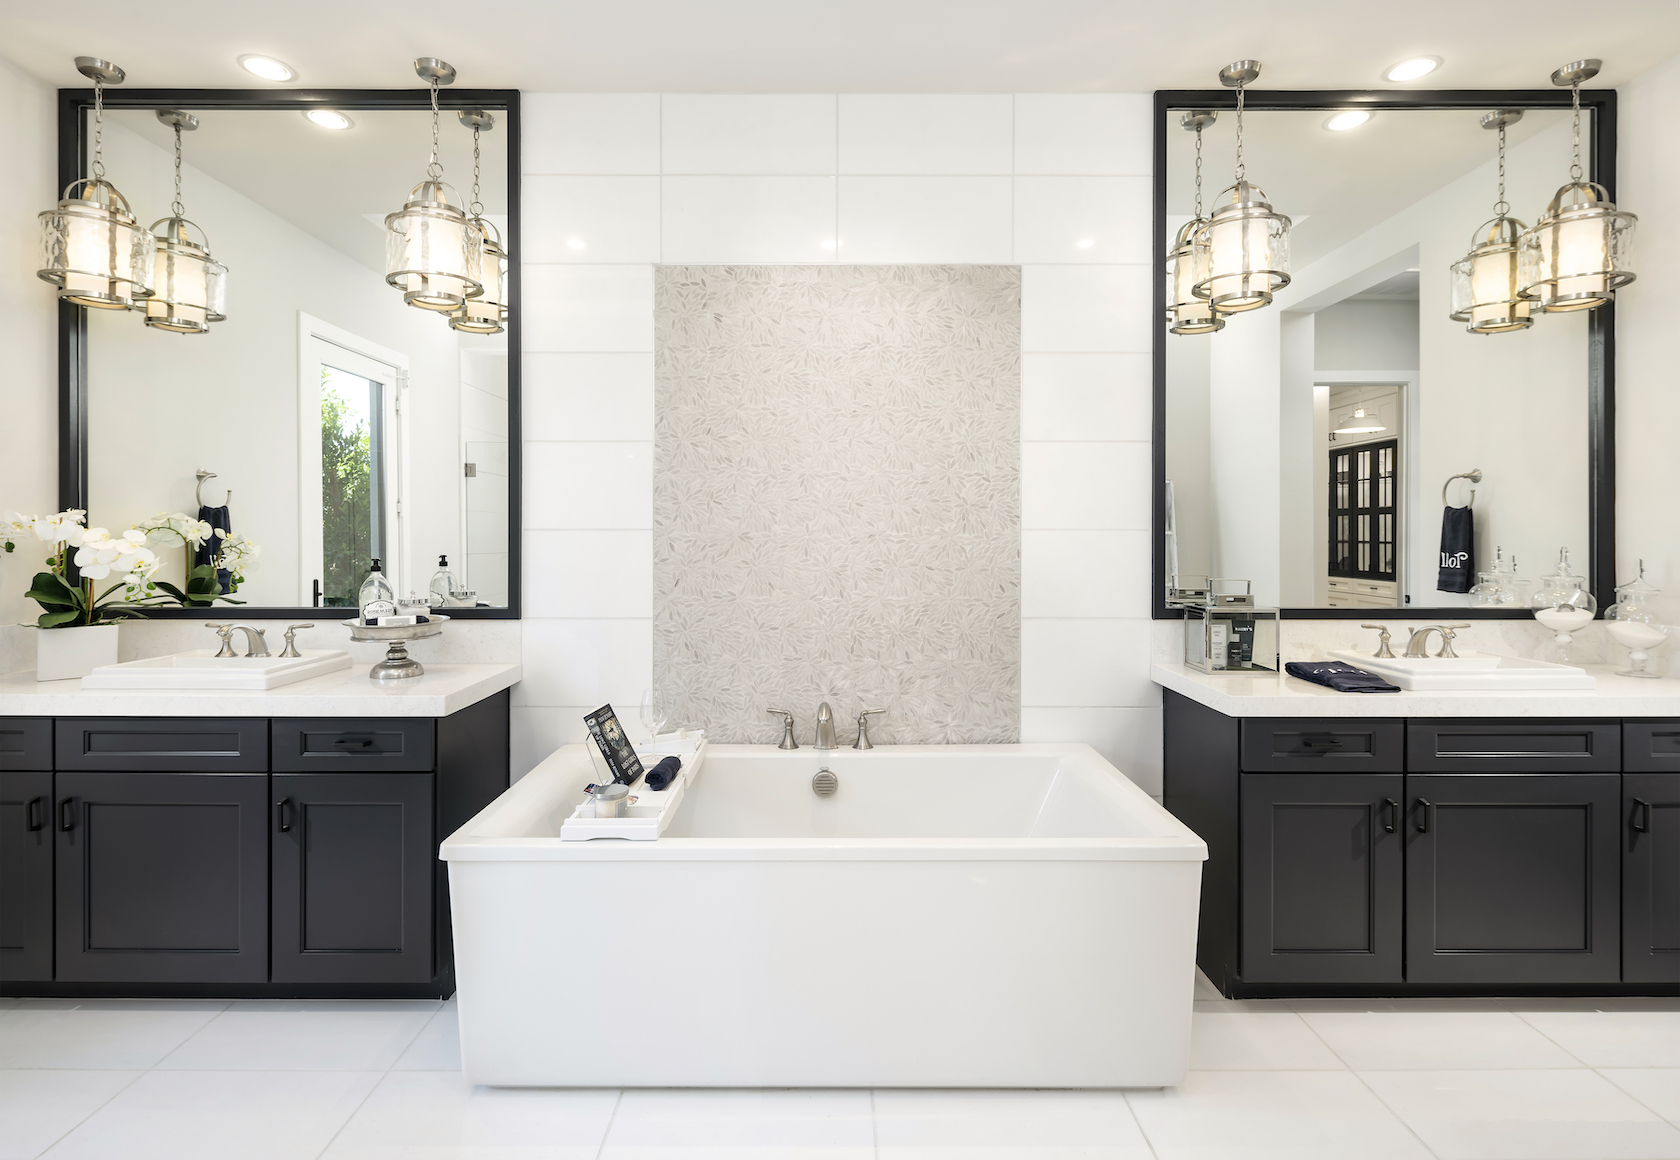 Bathroom Without Tub Ideas - Free | Pixels